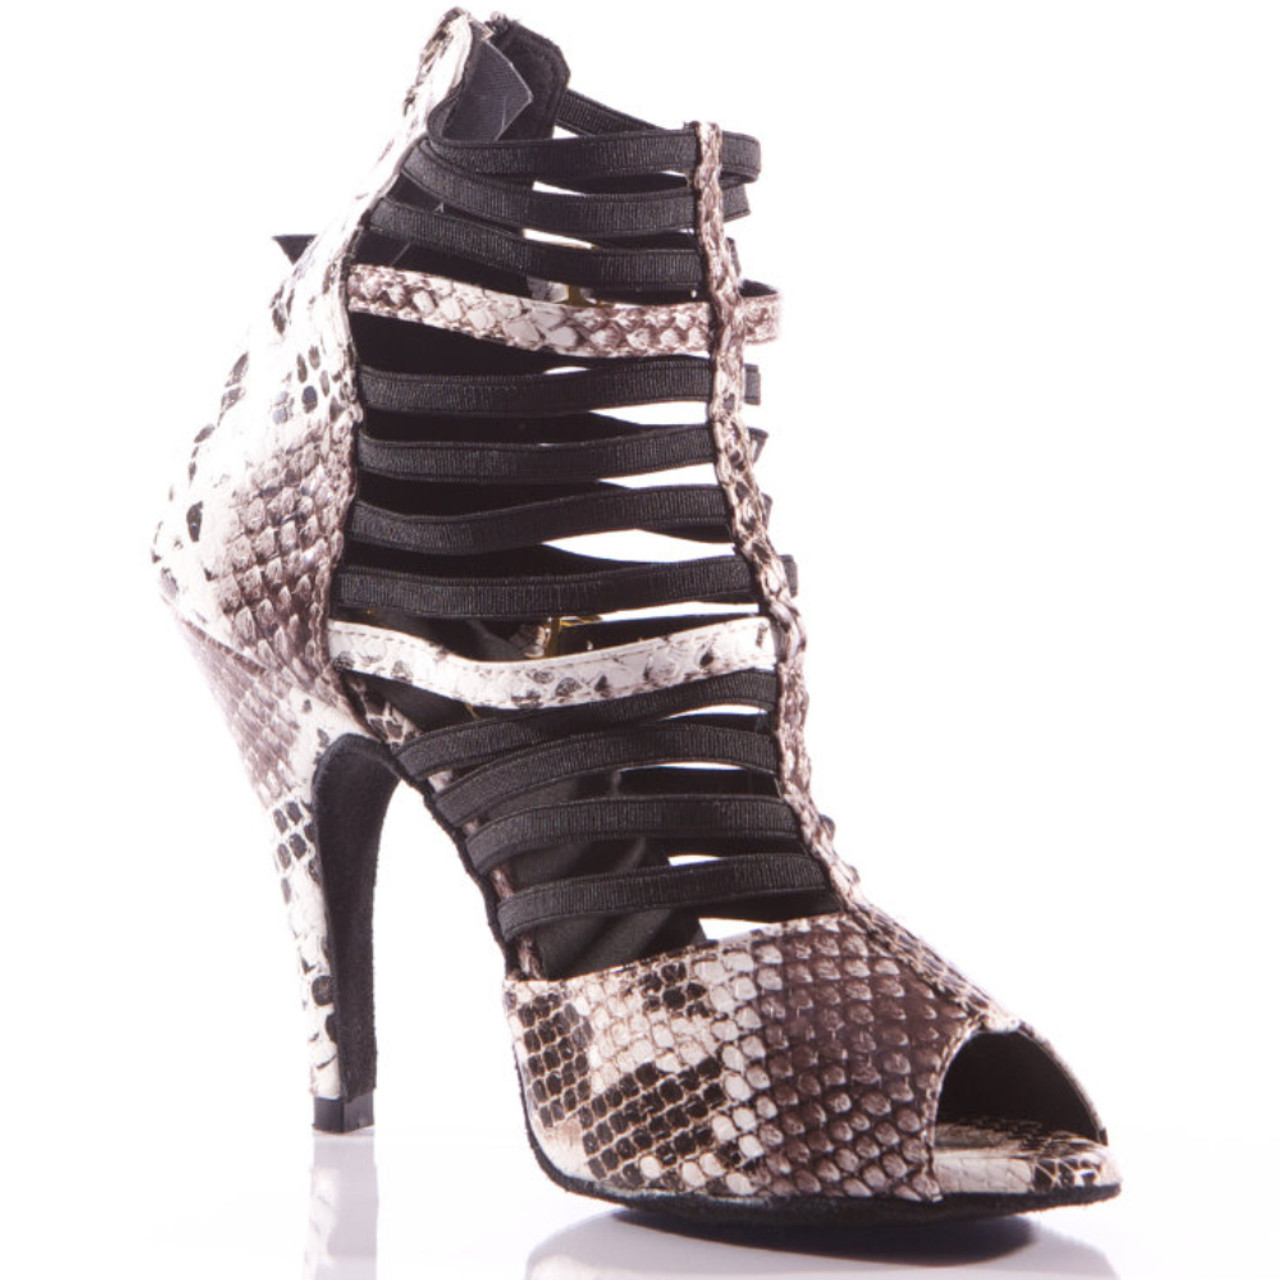 63f77f876f11 Relle - Black and White Faux Snake Skin Open Toe Elastic Strappy Stiletto  Dance Shoe - 4 inch Heels - Burju Shoes